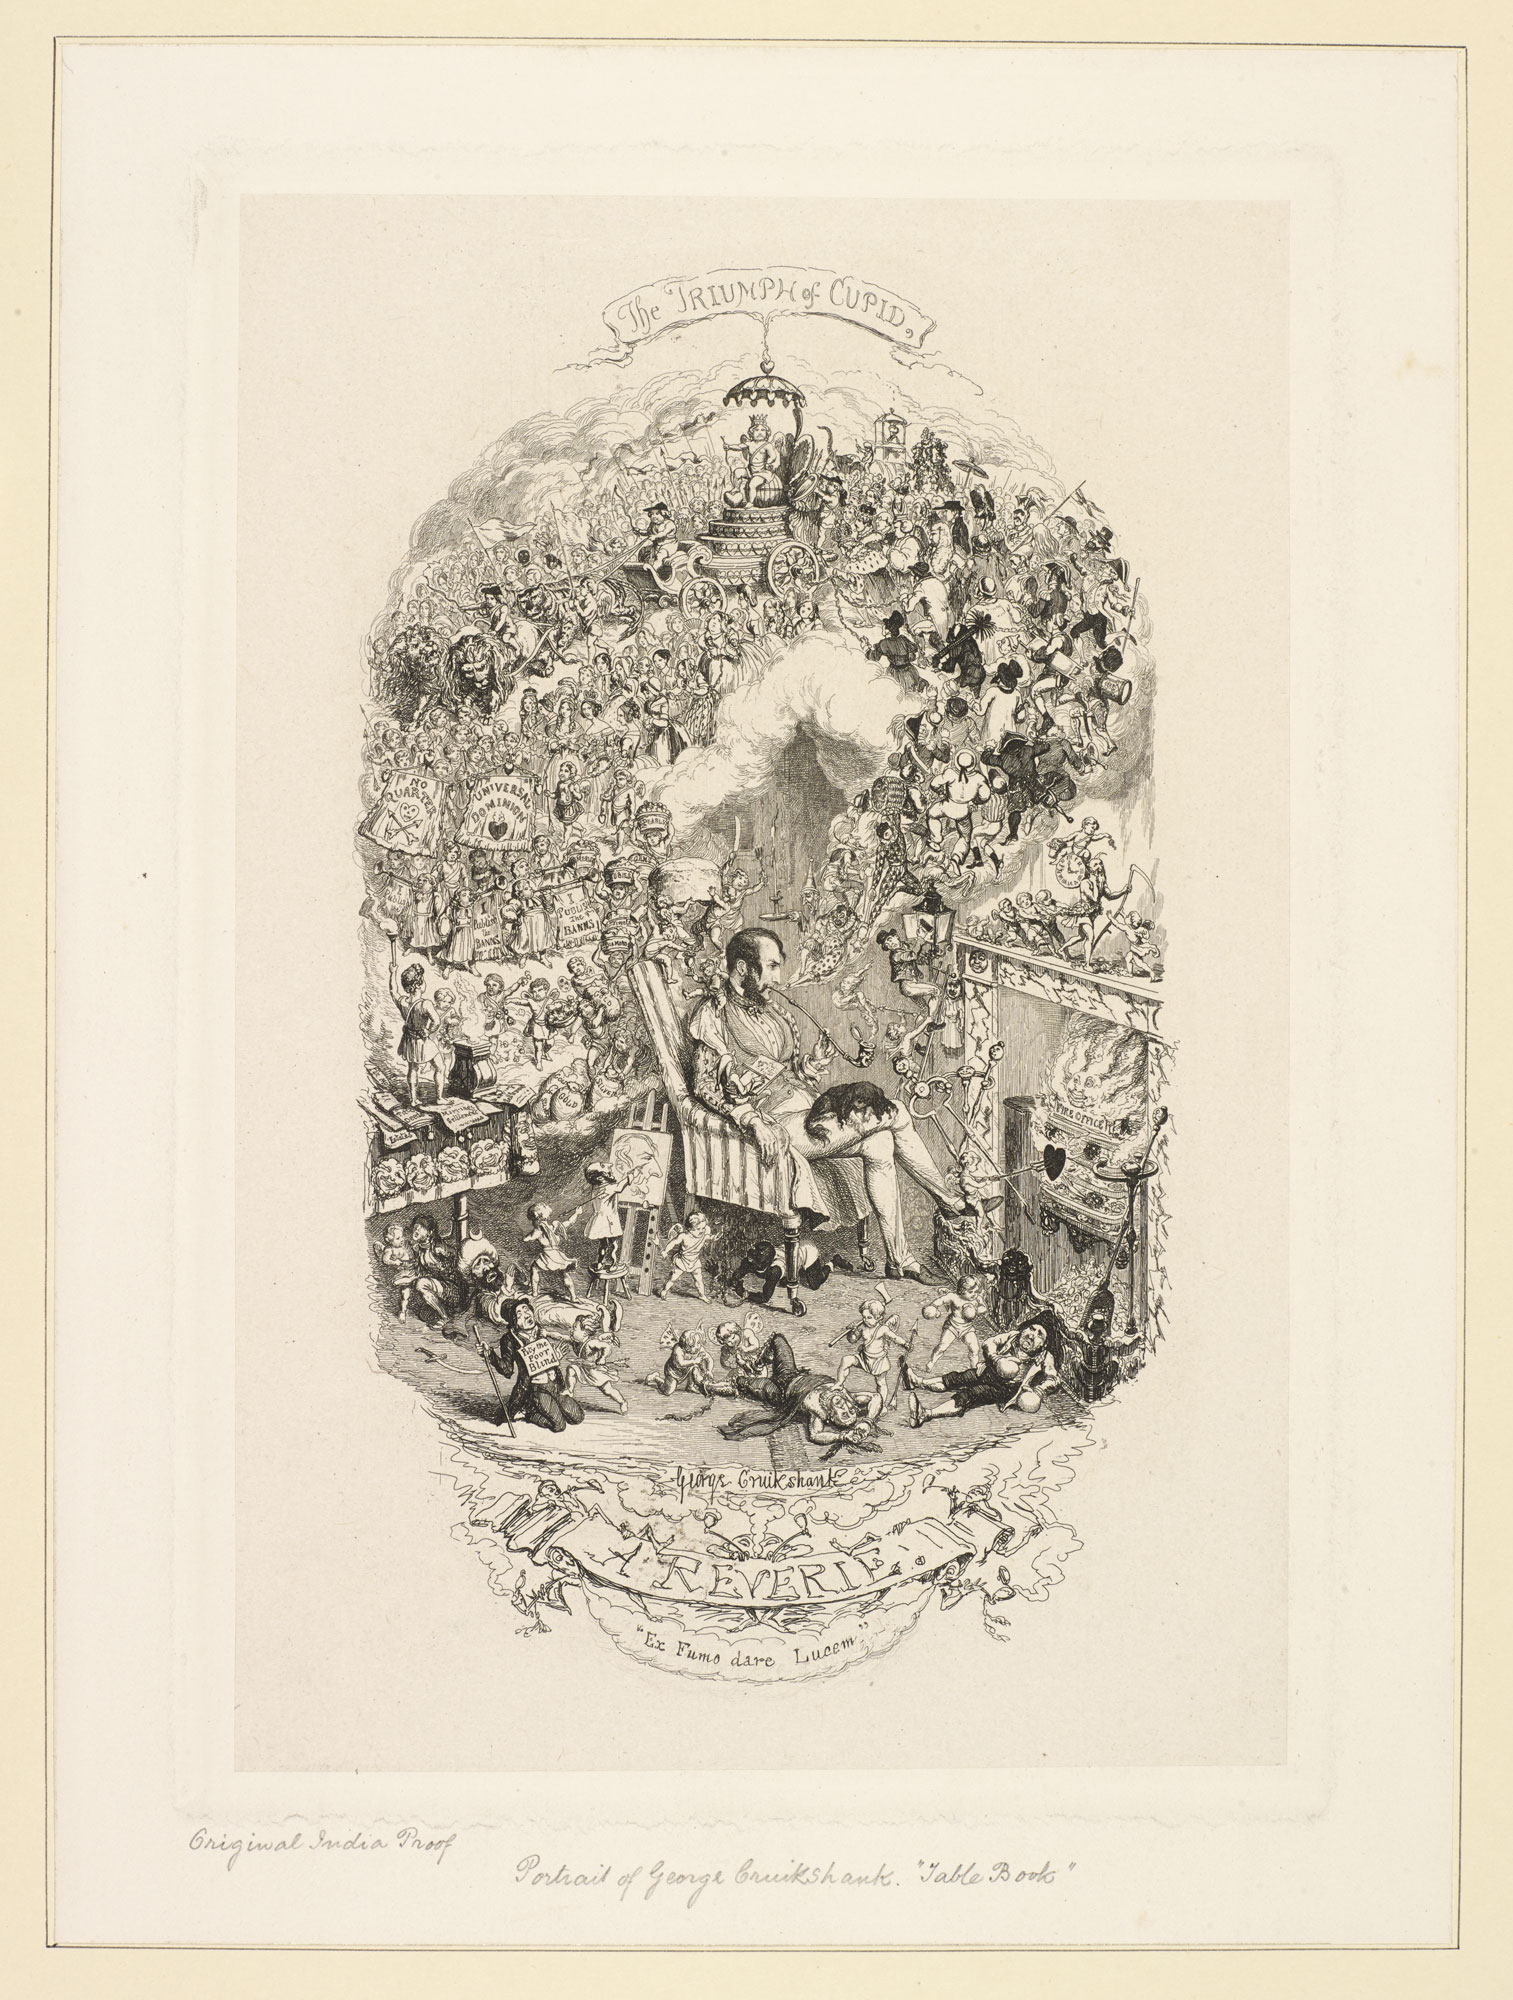 A self-portrait of George Cruikshank [page: 89]